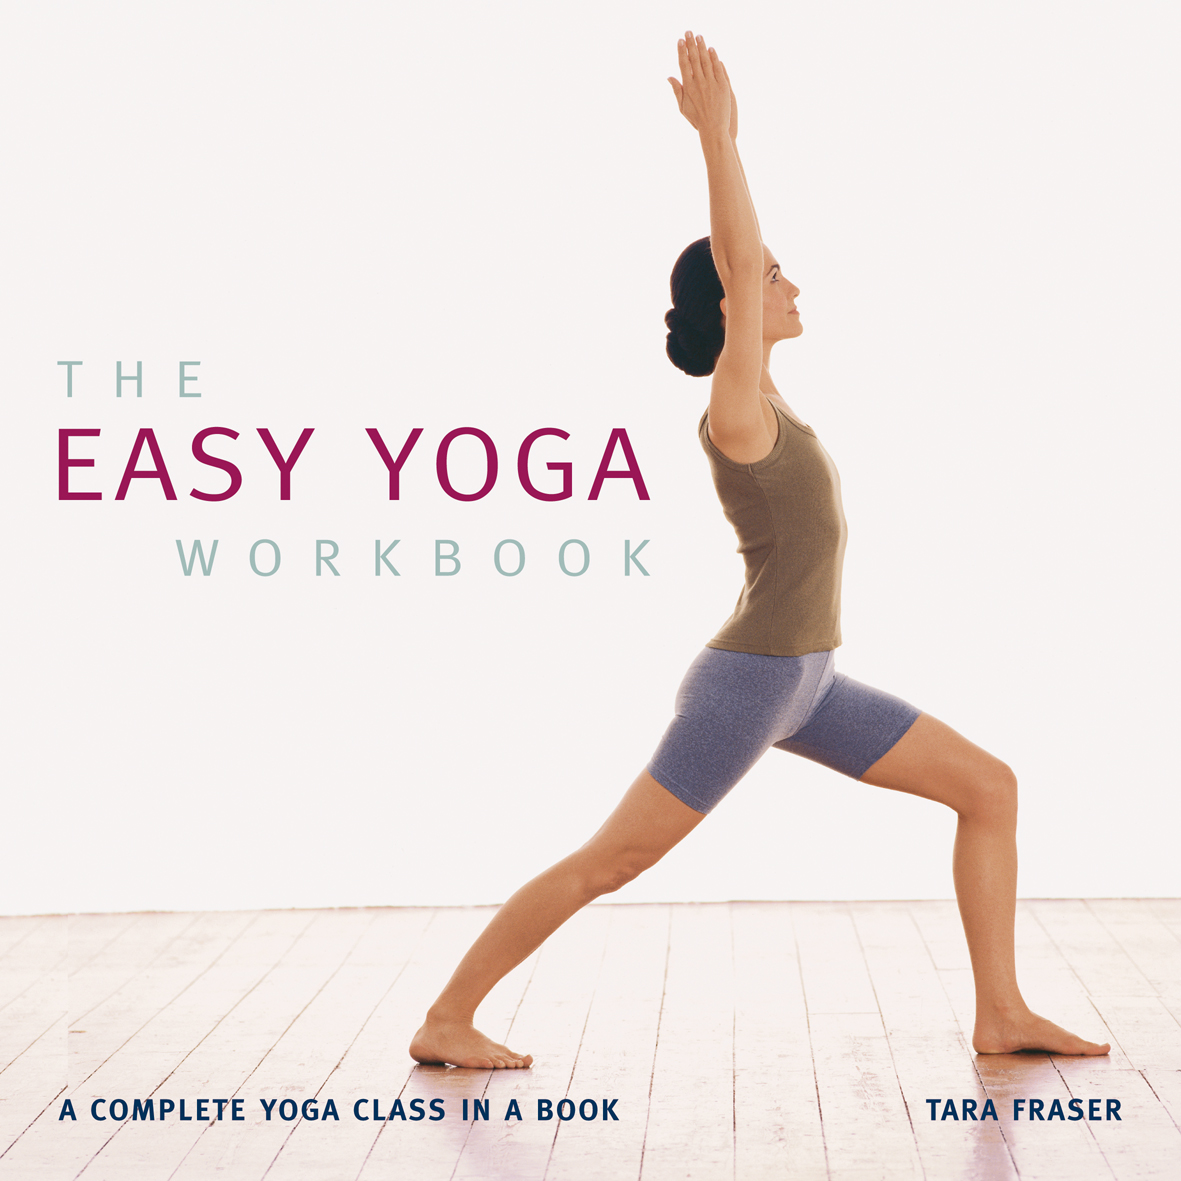 Simple Book Cover Yoga : The easy yoga workbook healthy living nourish